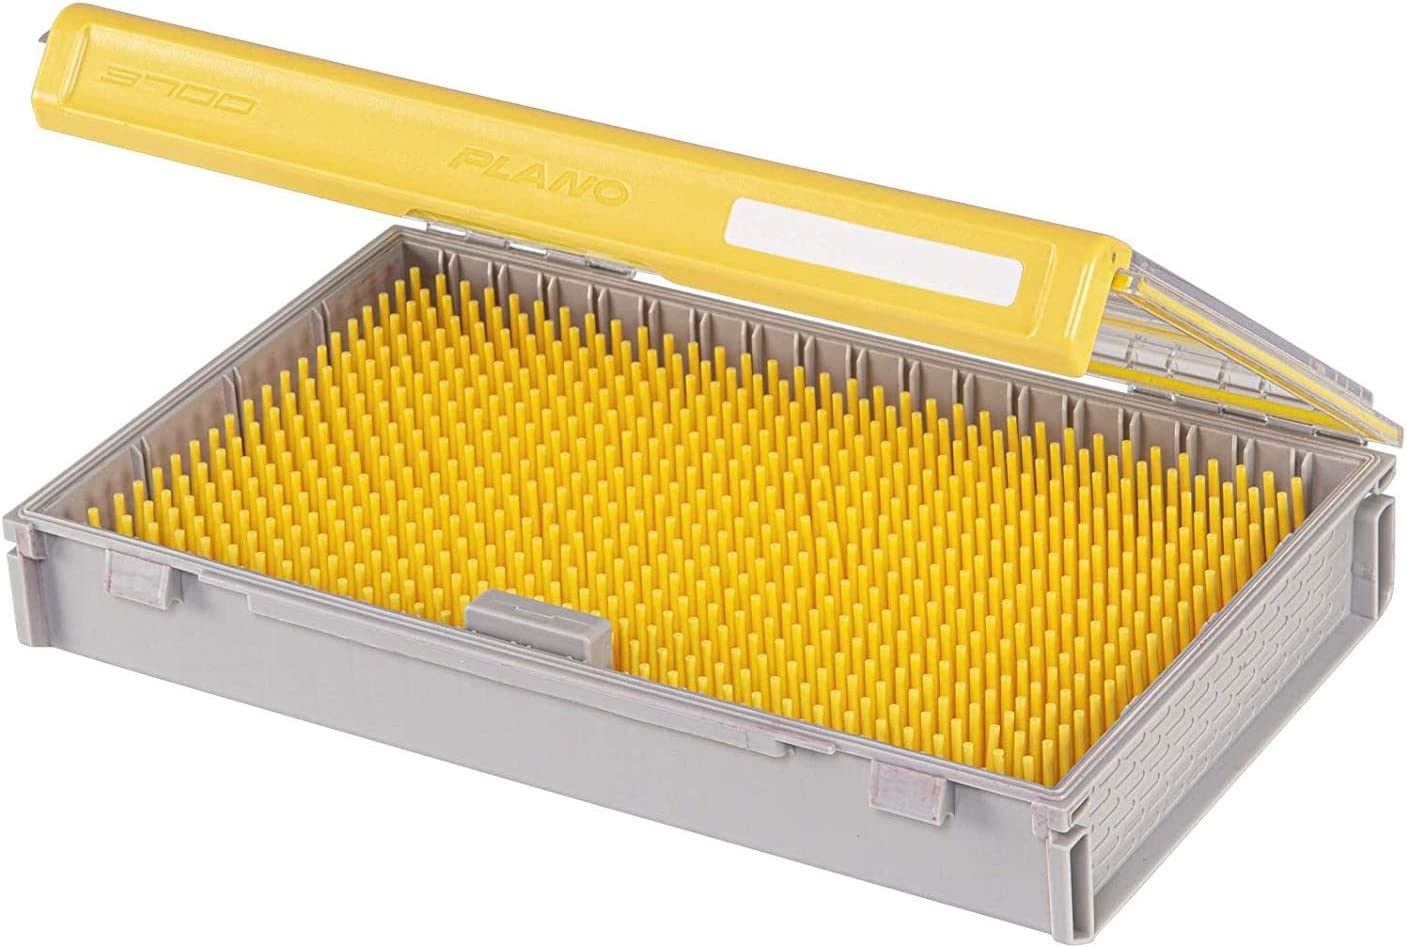 Plano EDGE Professional Series Tackle Storage Boxes Premium Tackle Organization with Rust Prevention